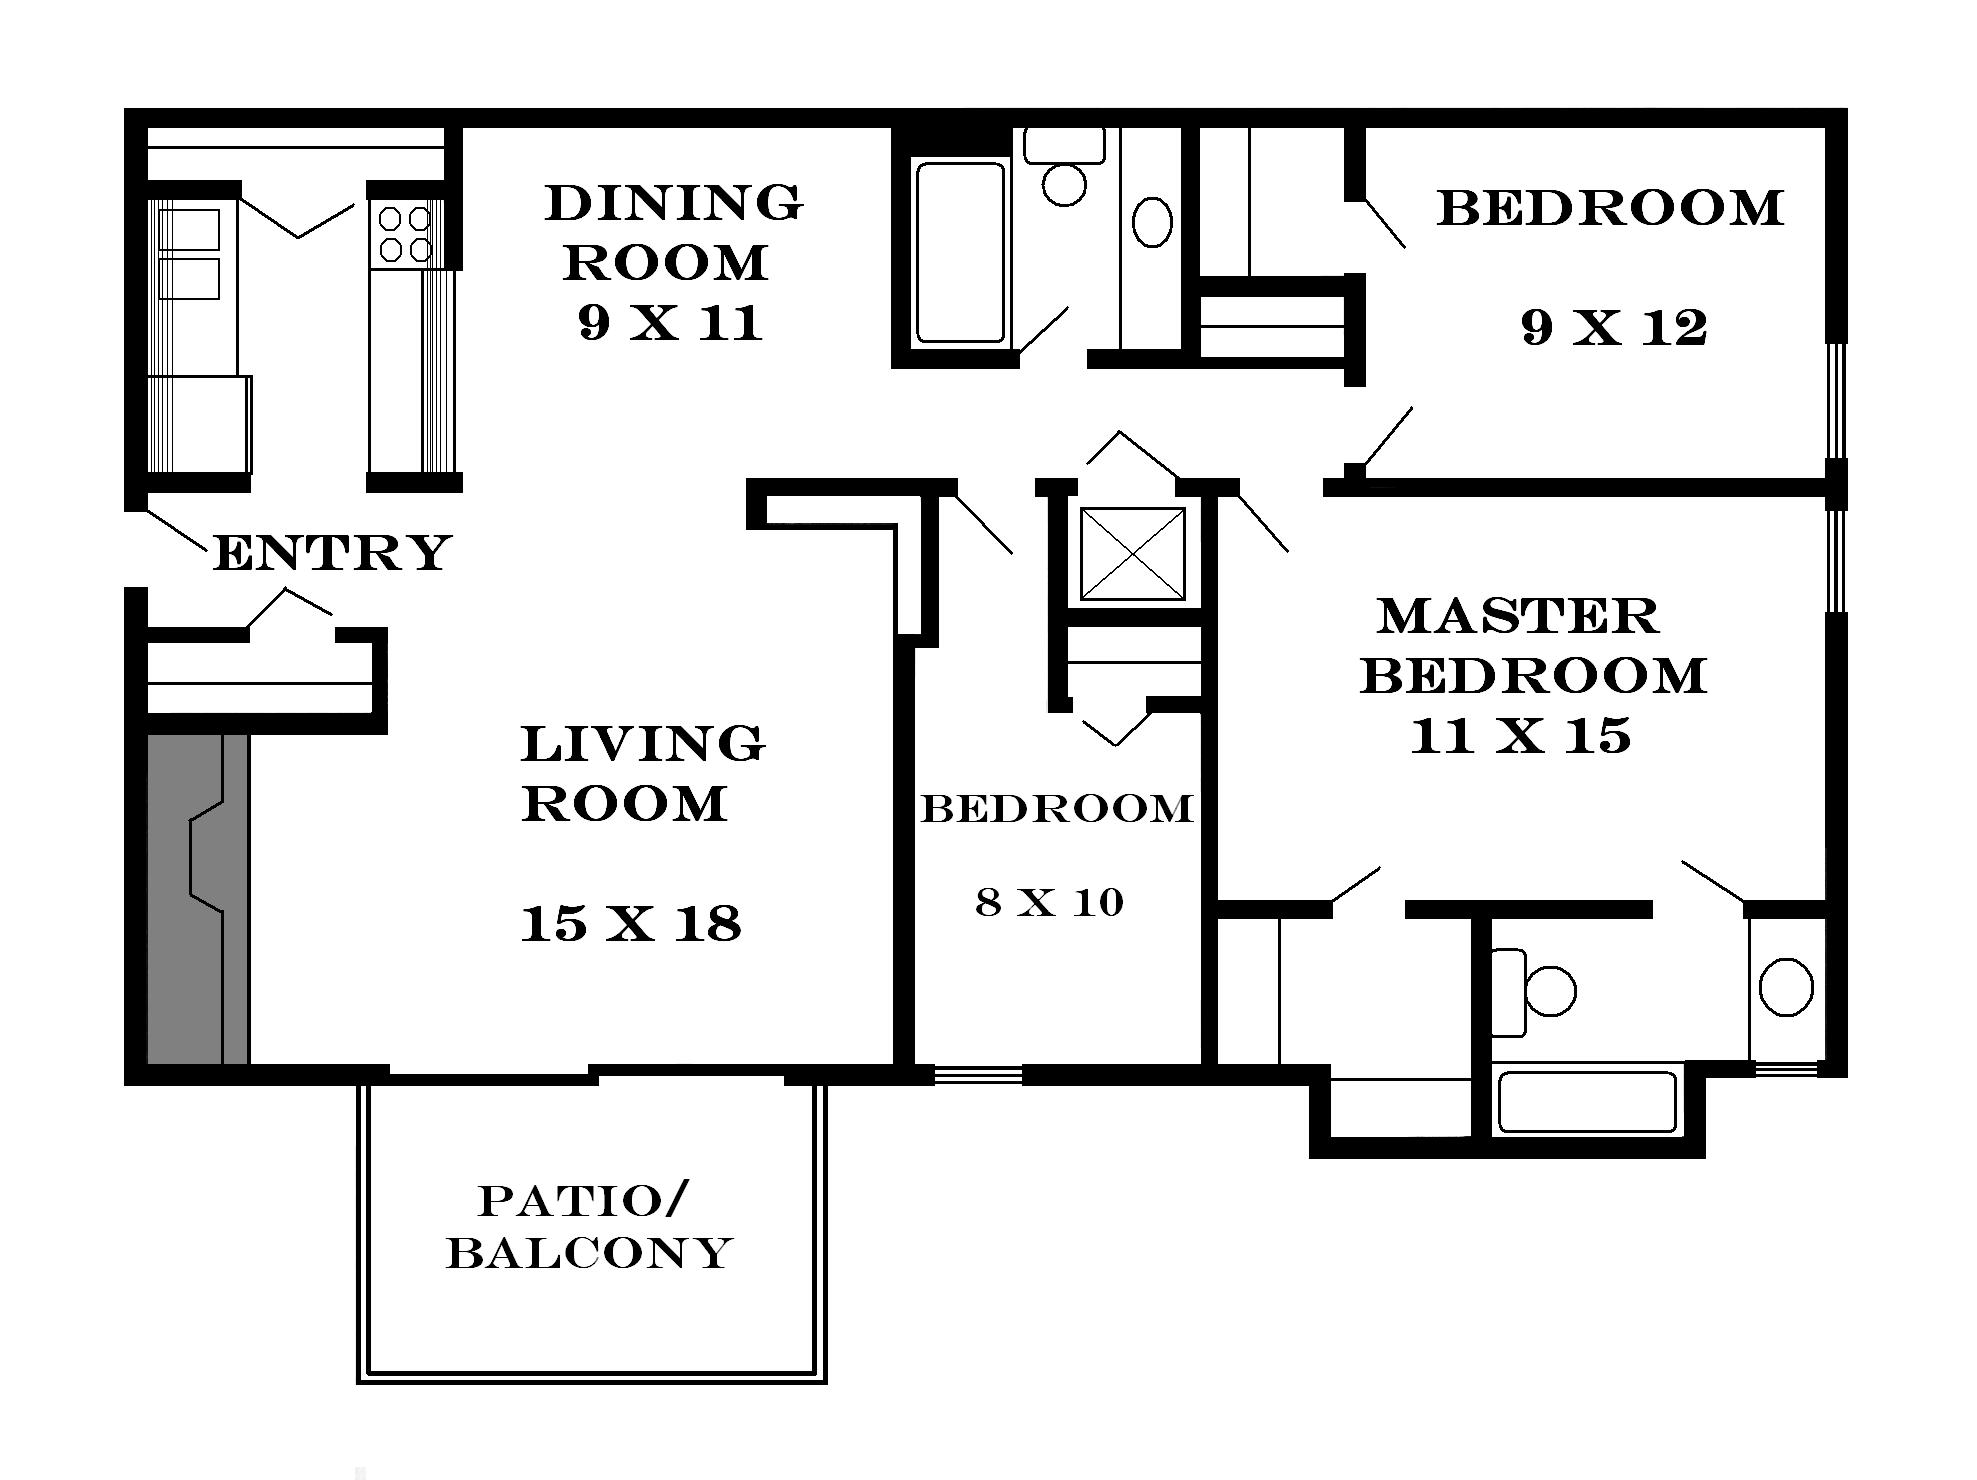 Lawrence apartments meadowbrook 2601 dover square - Architectural plan of two bedroom flat with dining room ...